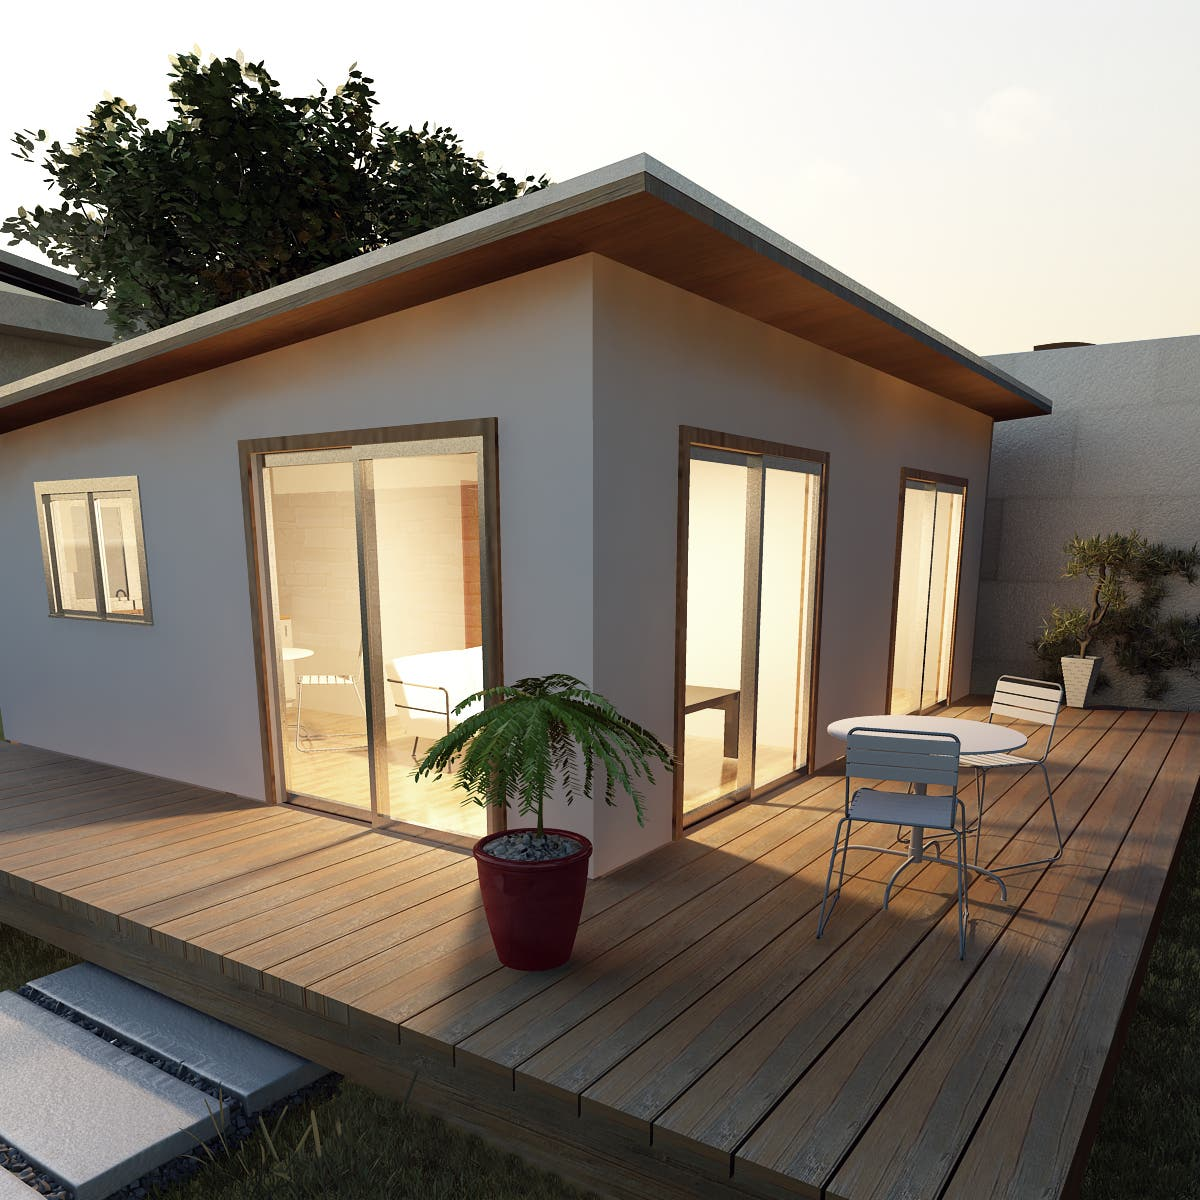 The p pod Small house design